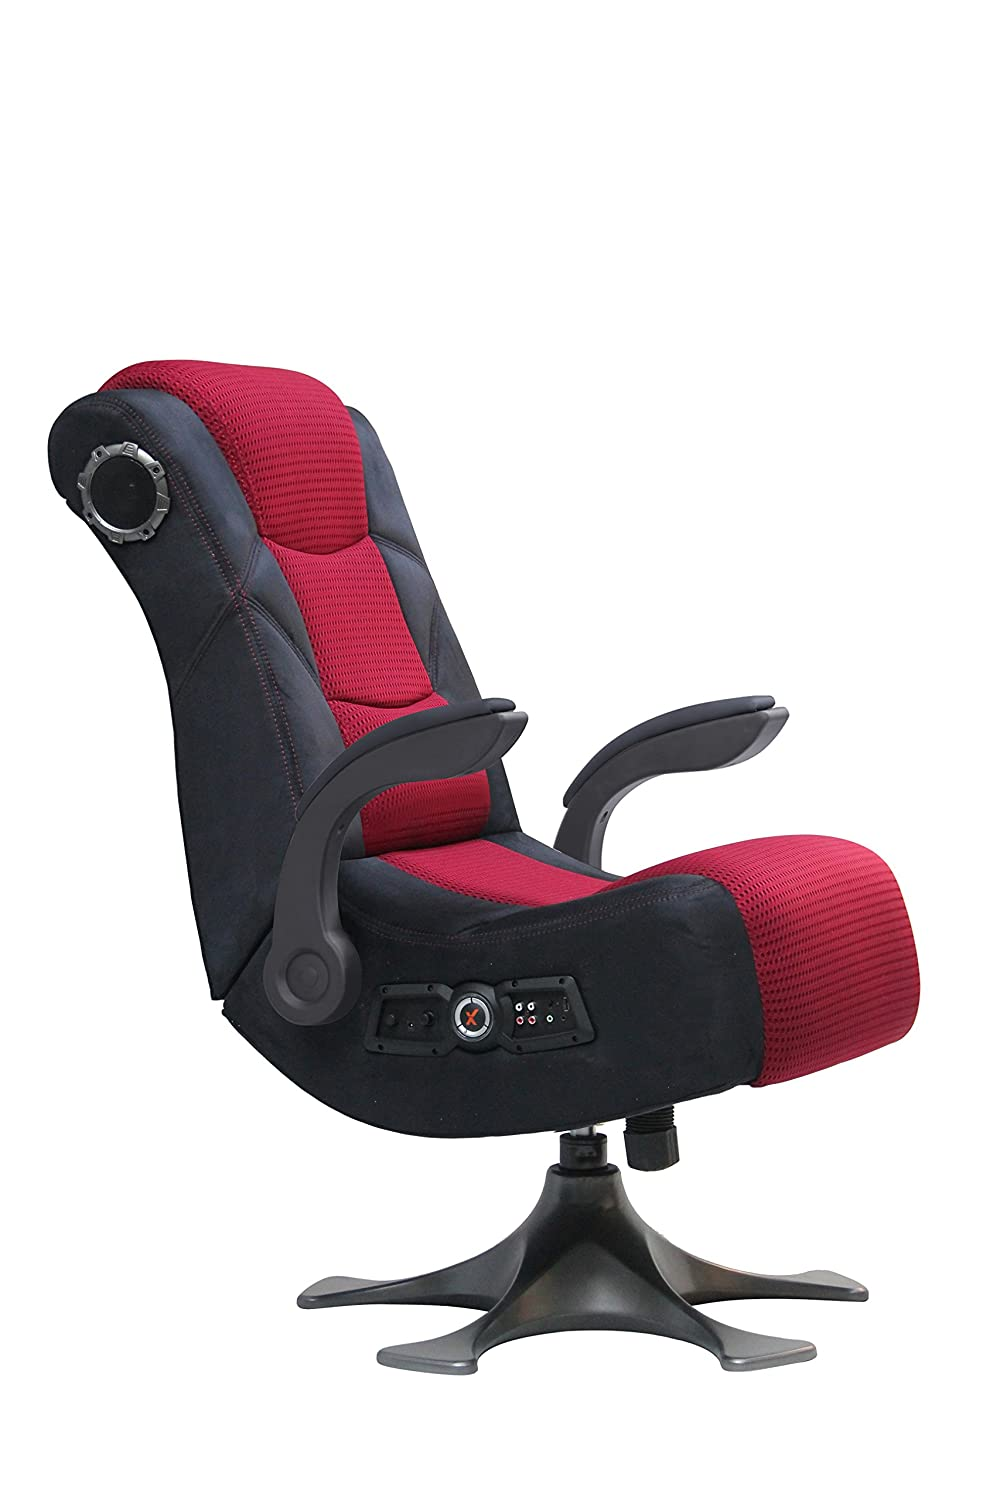 Swell X Rocker 2 1 Microfiber Mesh Pedestal Video Gaming Chair Bralicious Painted Fabric Chair Ideas Braliciousco